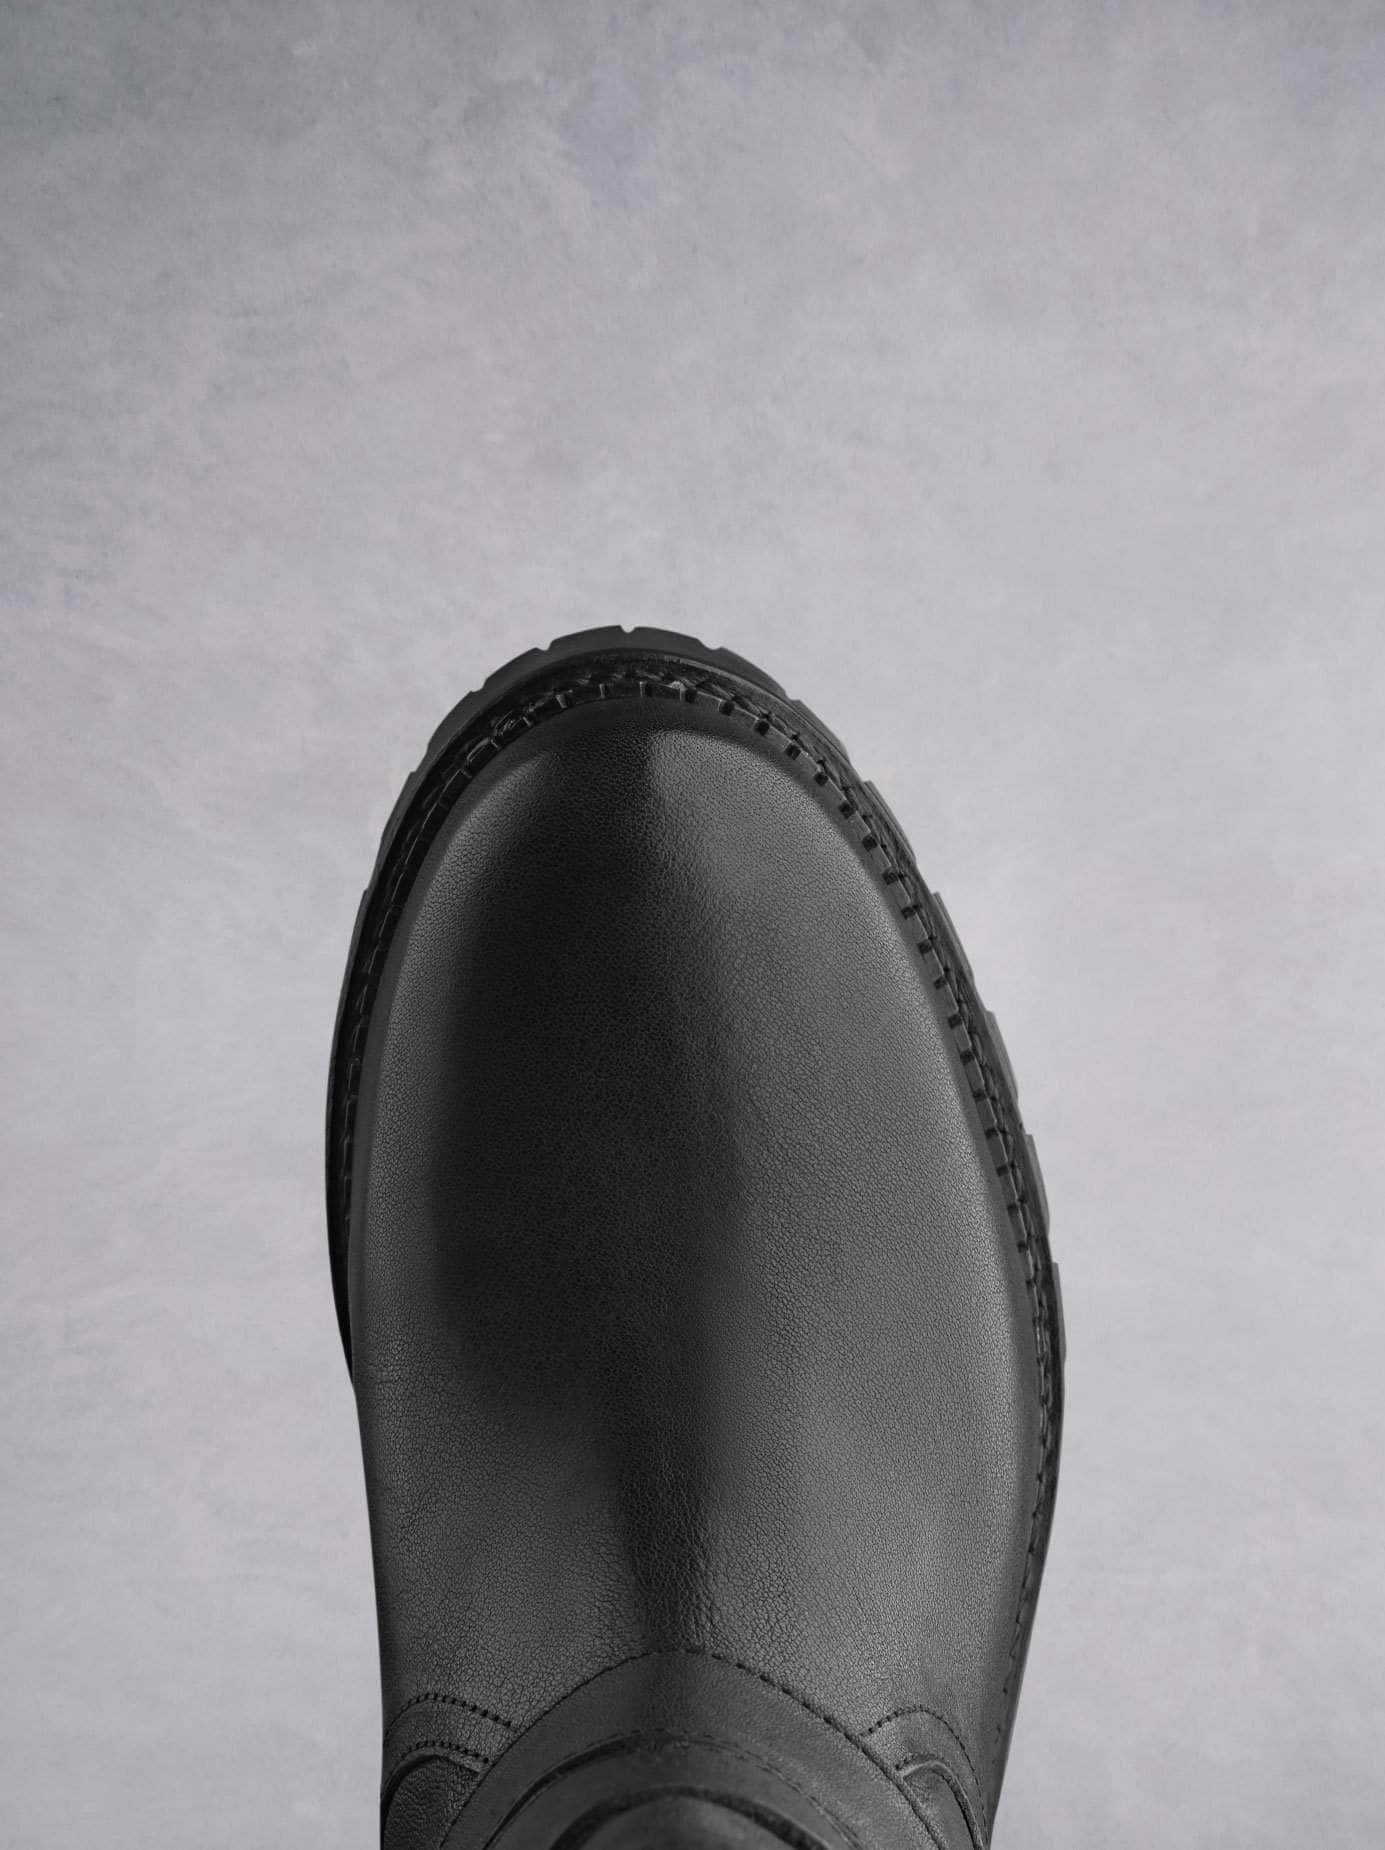 Longleat has a round toe and subtle black stitching.